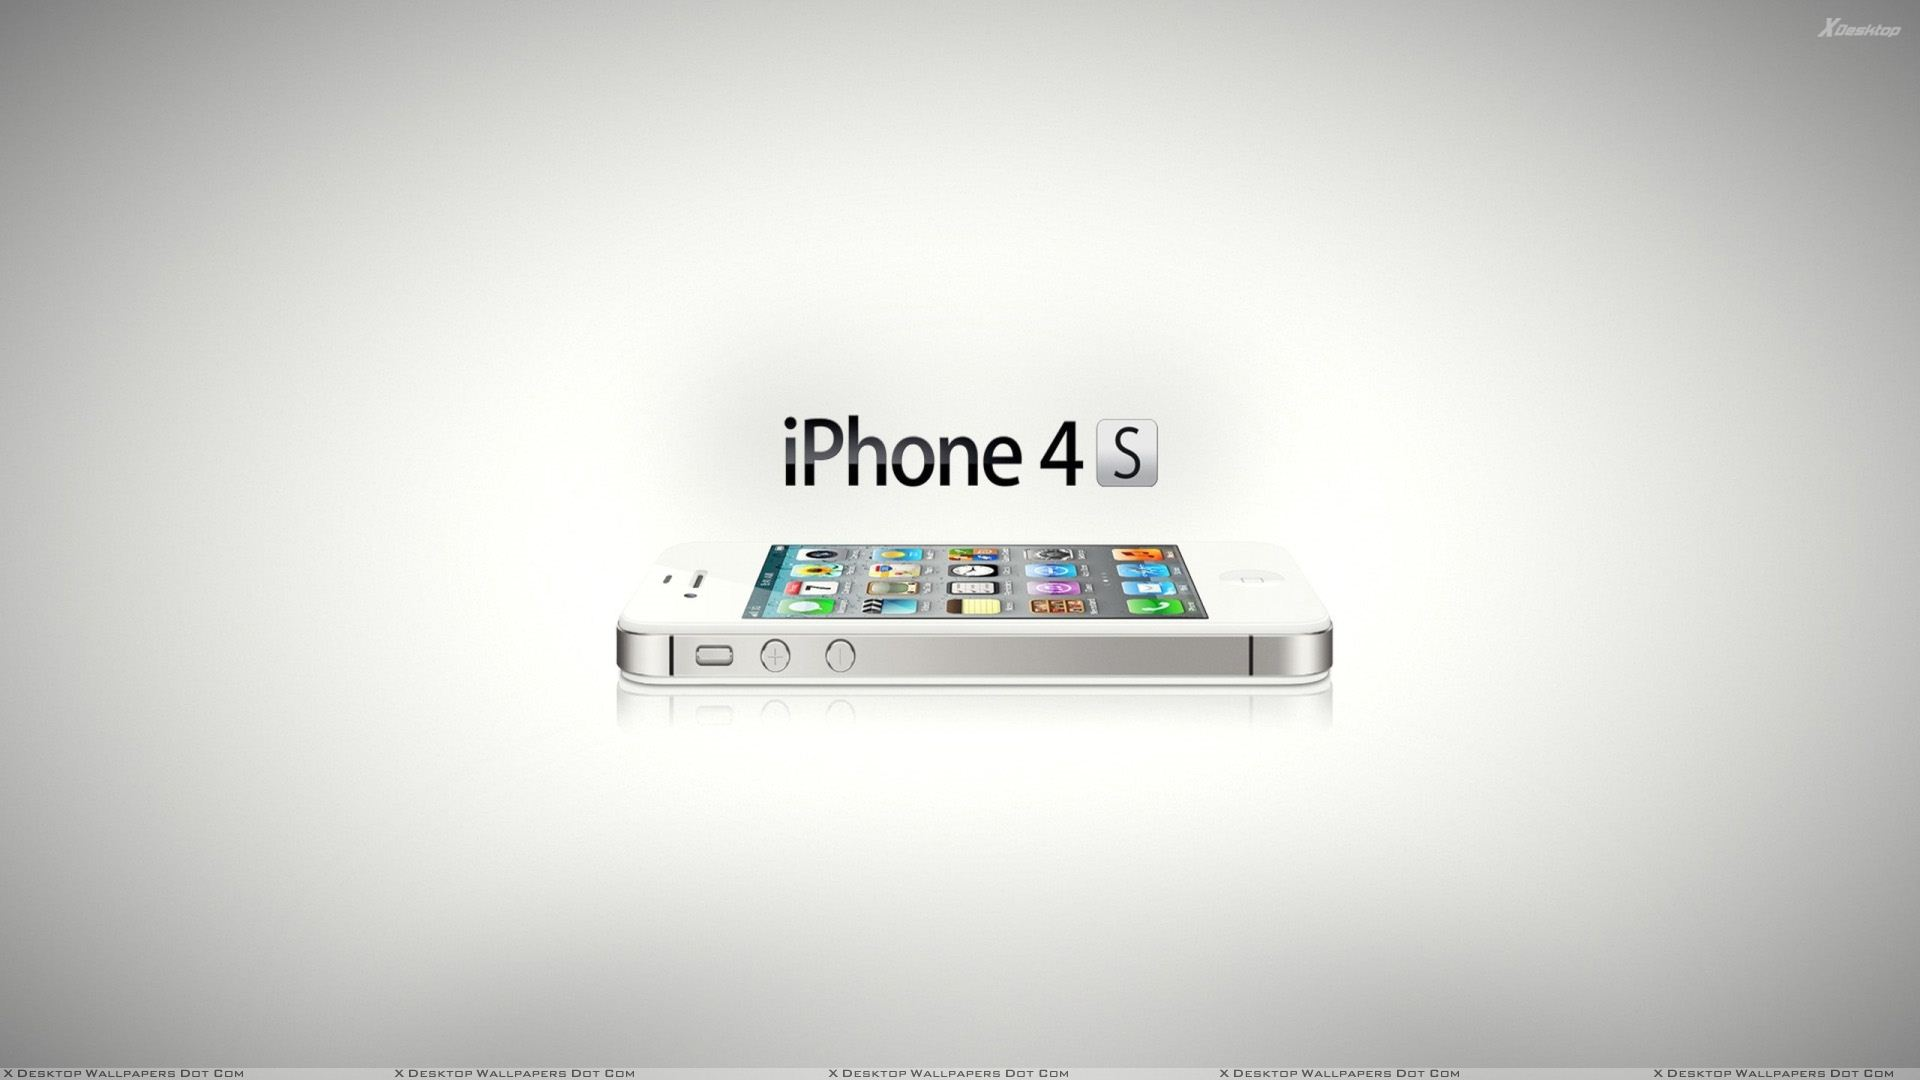 iphone 4s and white background wallpaper